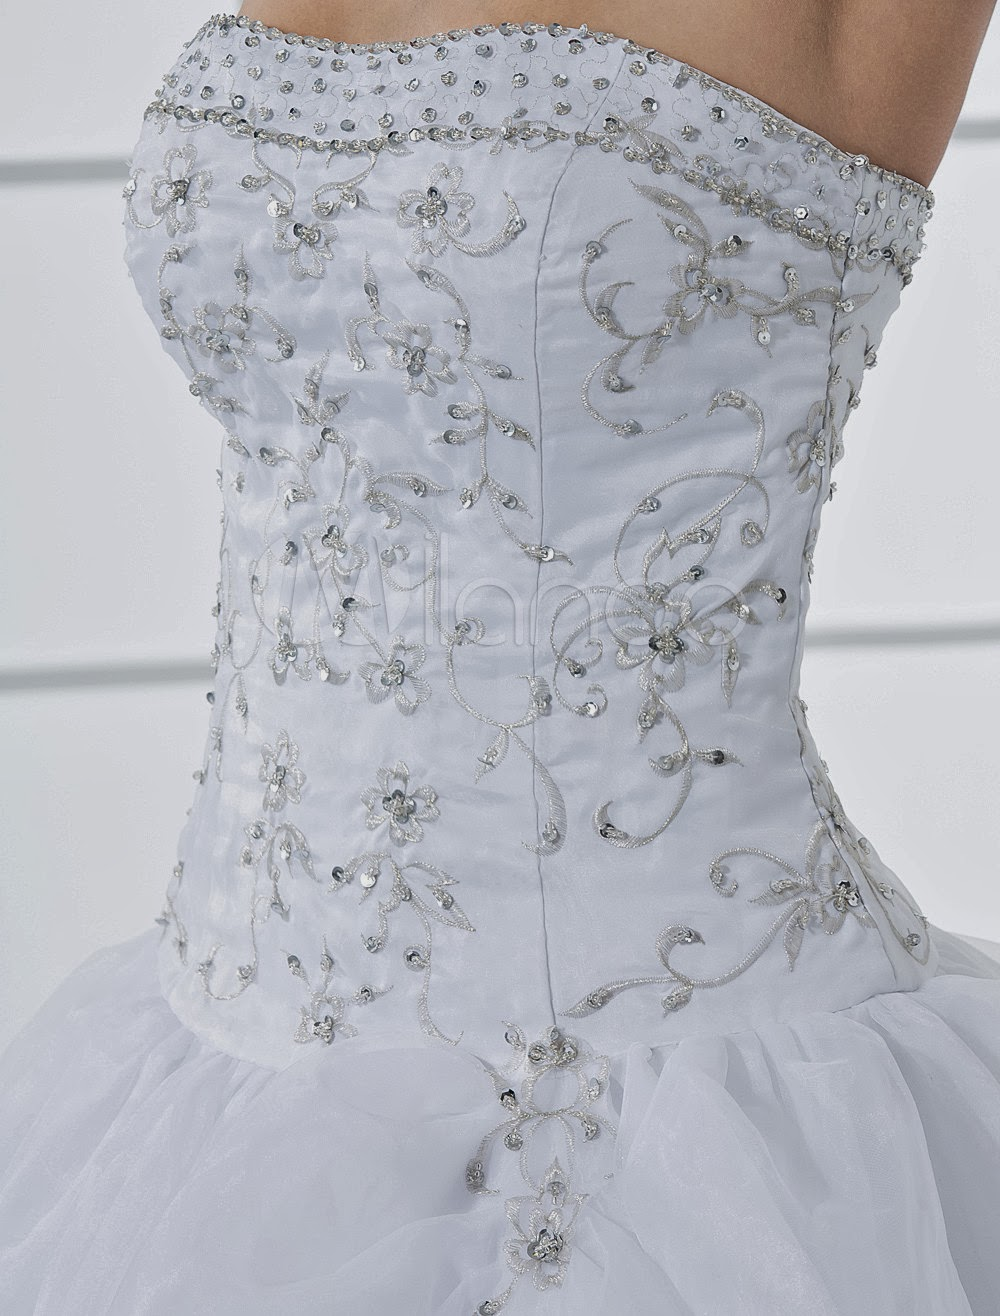 China Wholesale Dresses - Elegant Ball Gown White Quinceanera Dress